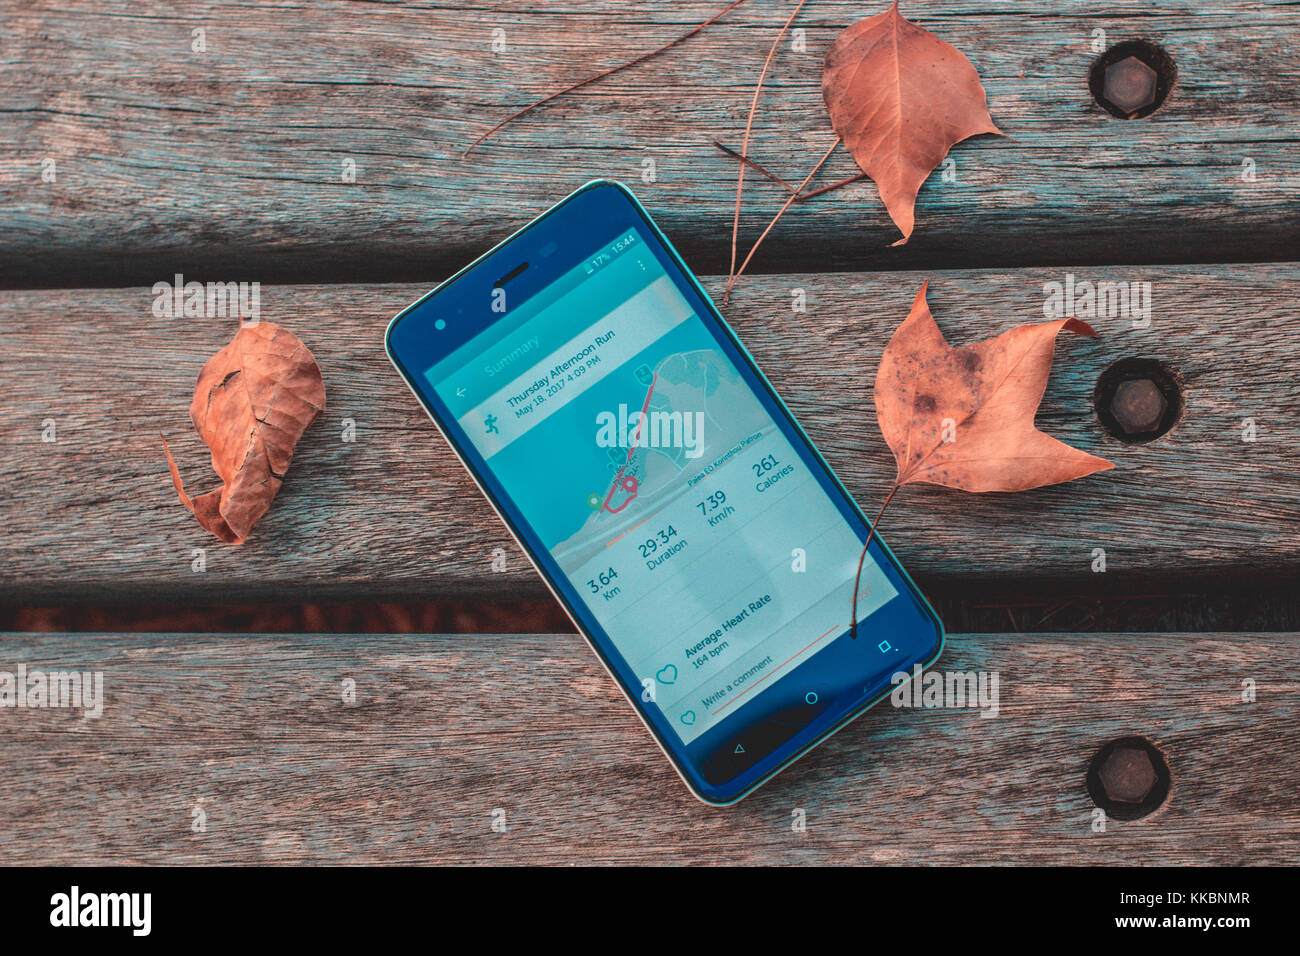 smartphone on a bench with a running app open showing stats after an autumn evening run with leaves on the side - Stock Image